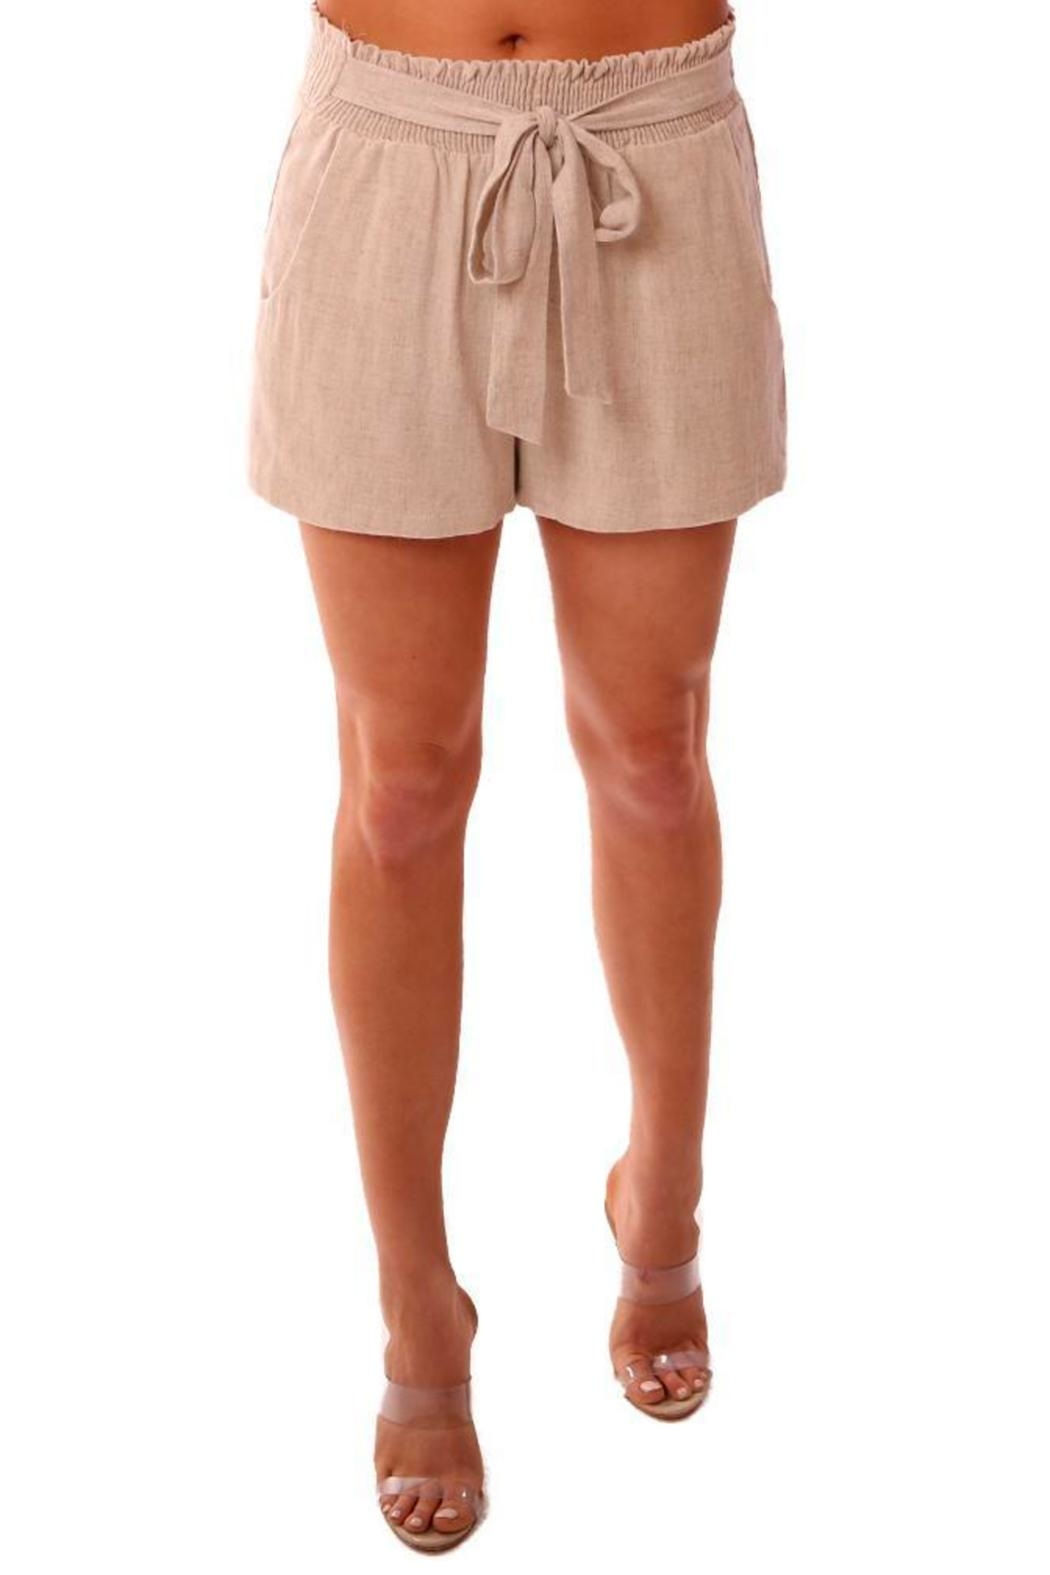 Veronica M Smocked Linen Shorts - Front Full Image